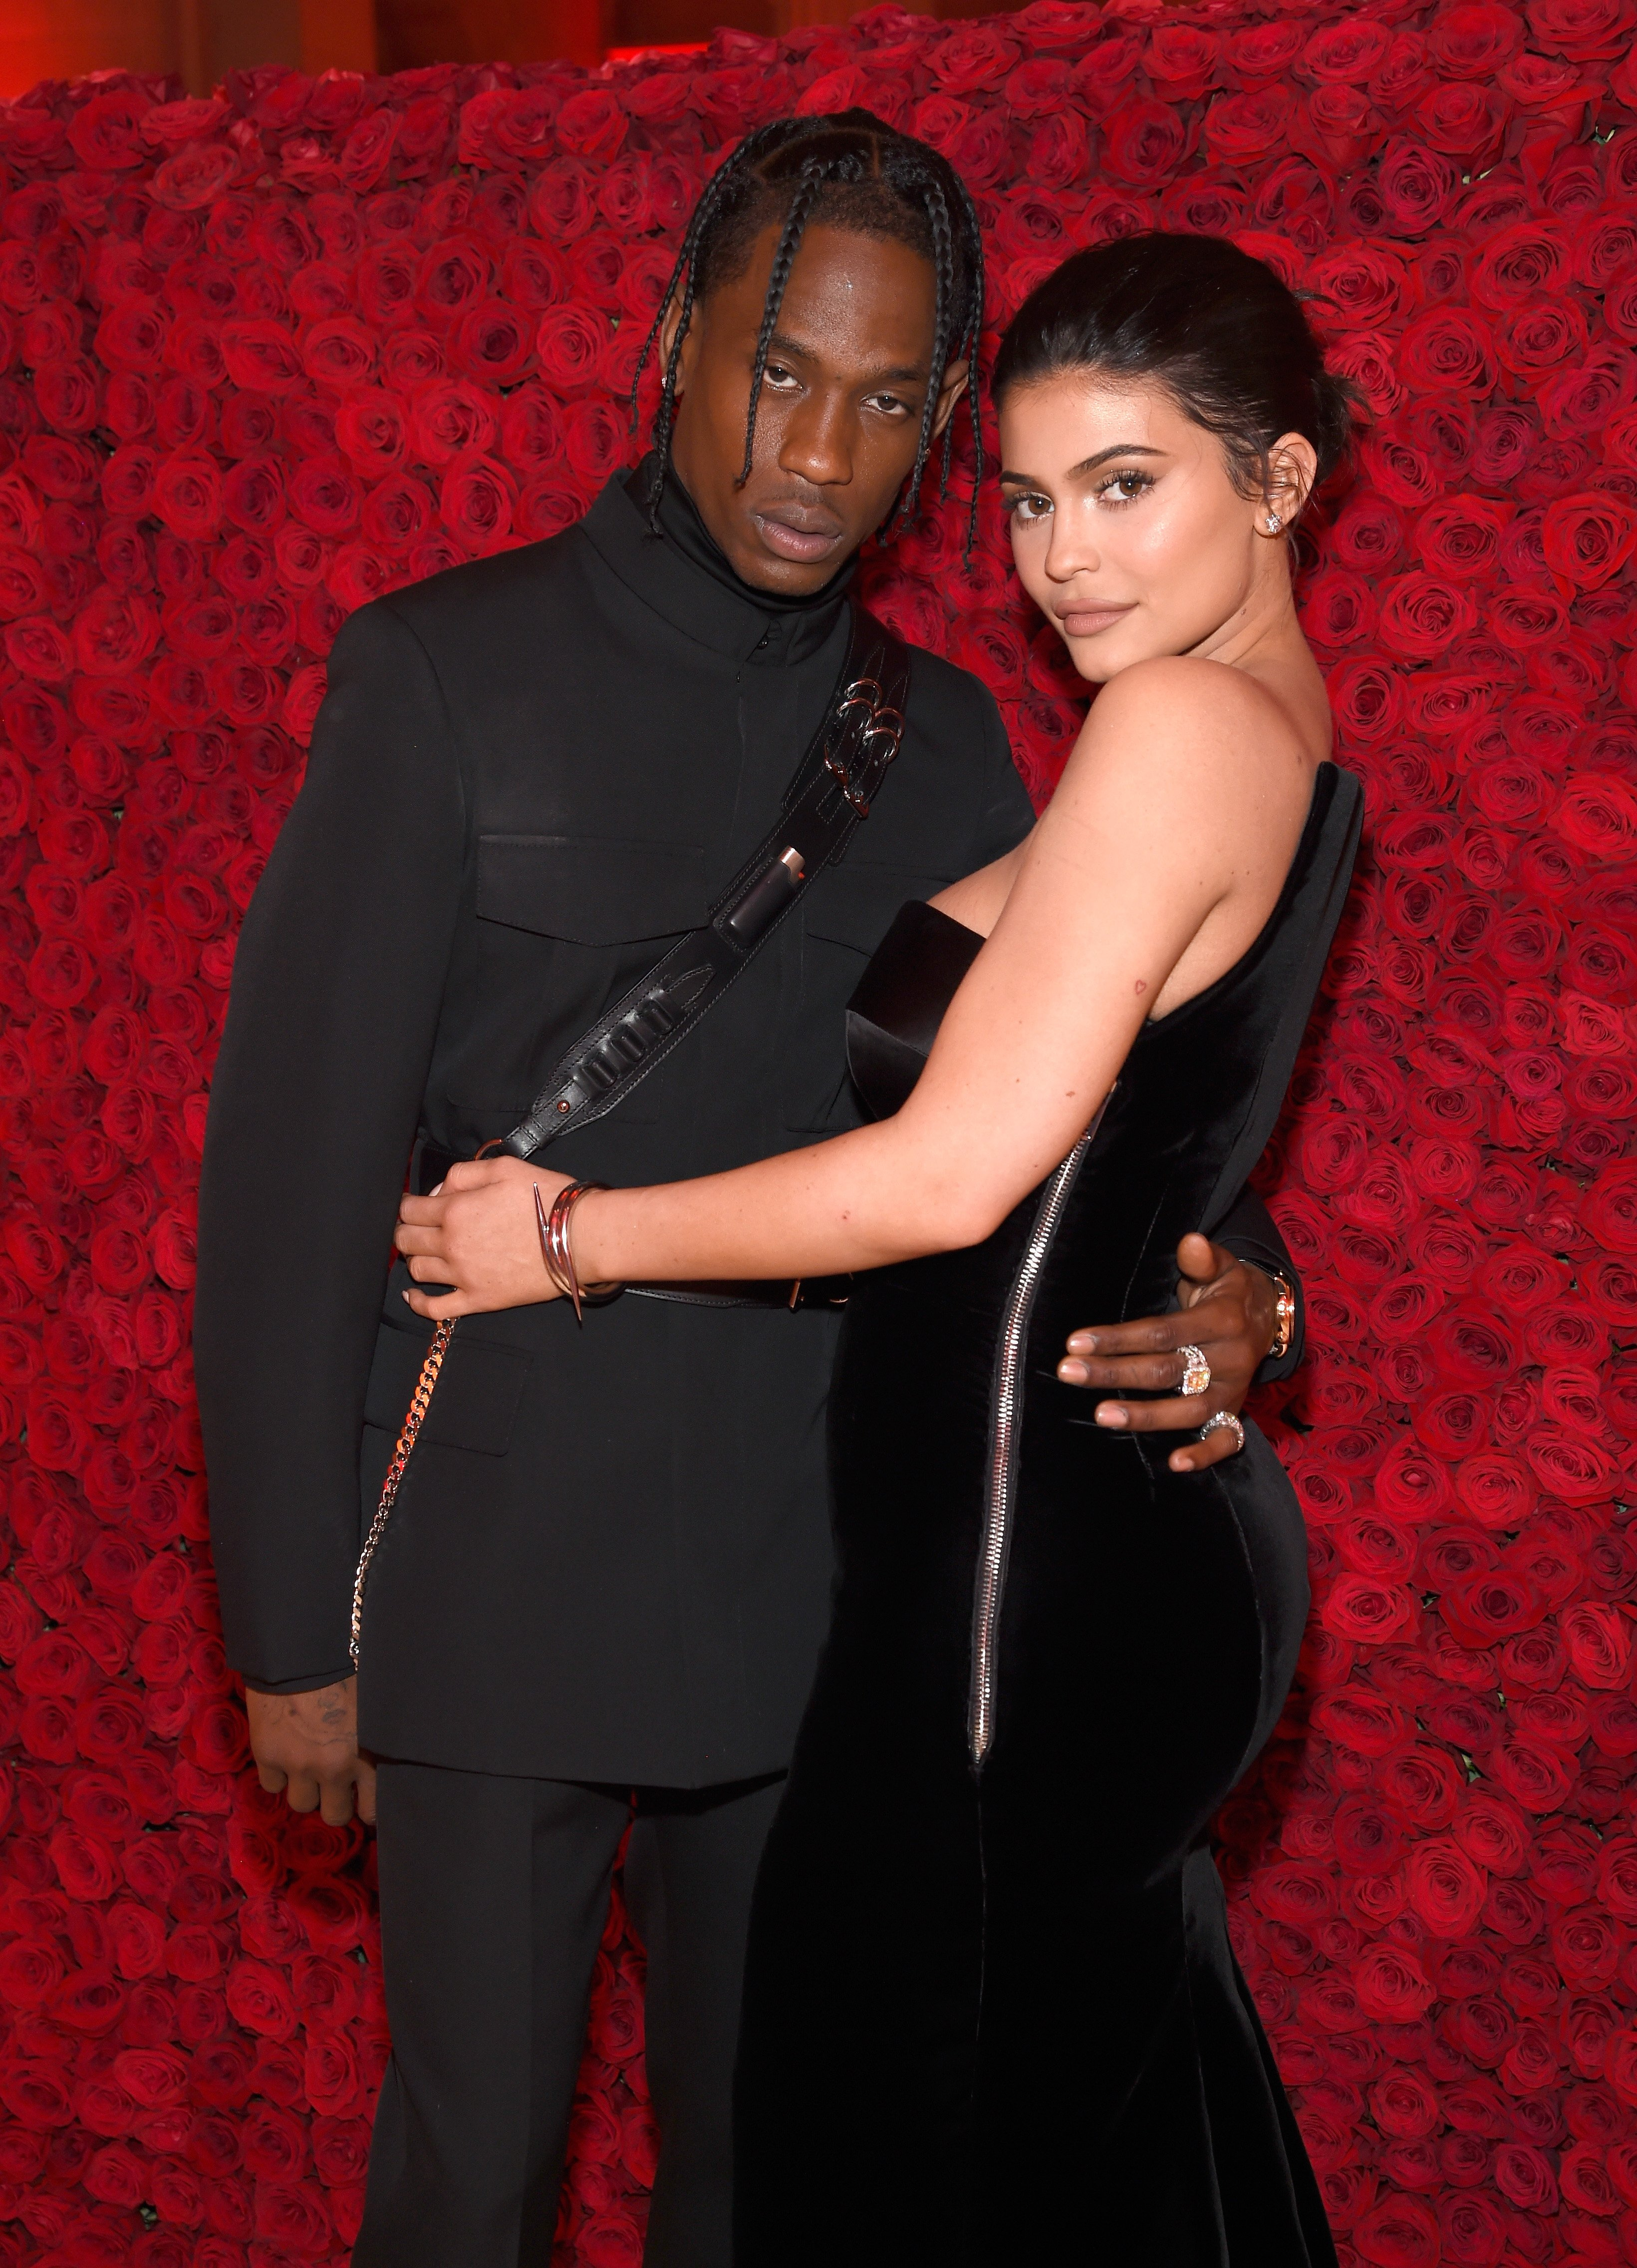 Travis Scott and Kylie Jenner attend the Heavenly Bodies: Fashion & The Catholic Imagination Costume Institute Gala on May 7, 2018, in New York City. | Source: Getty Images.